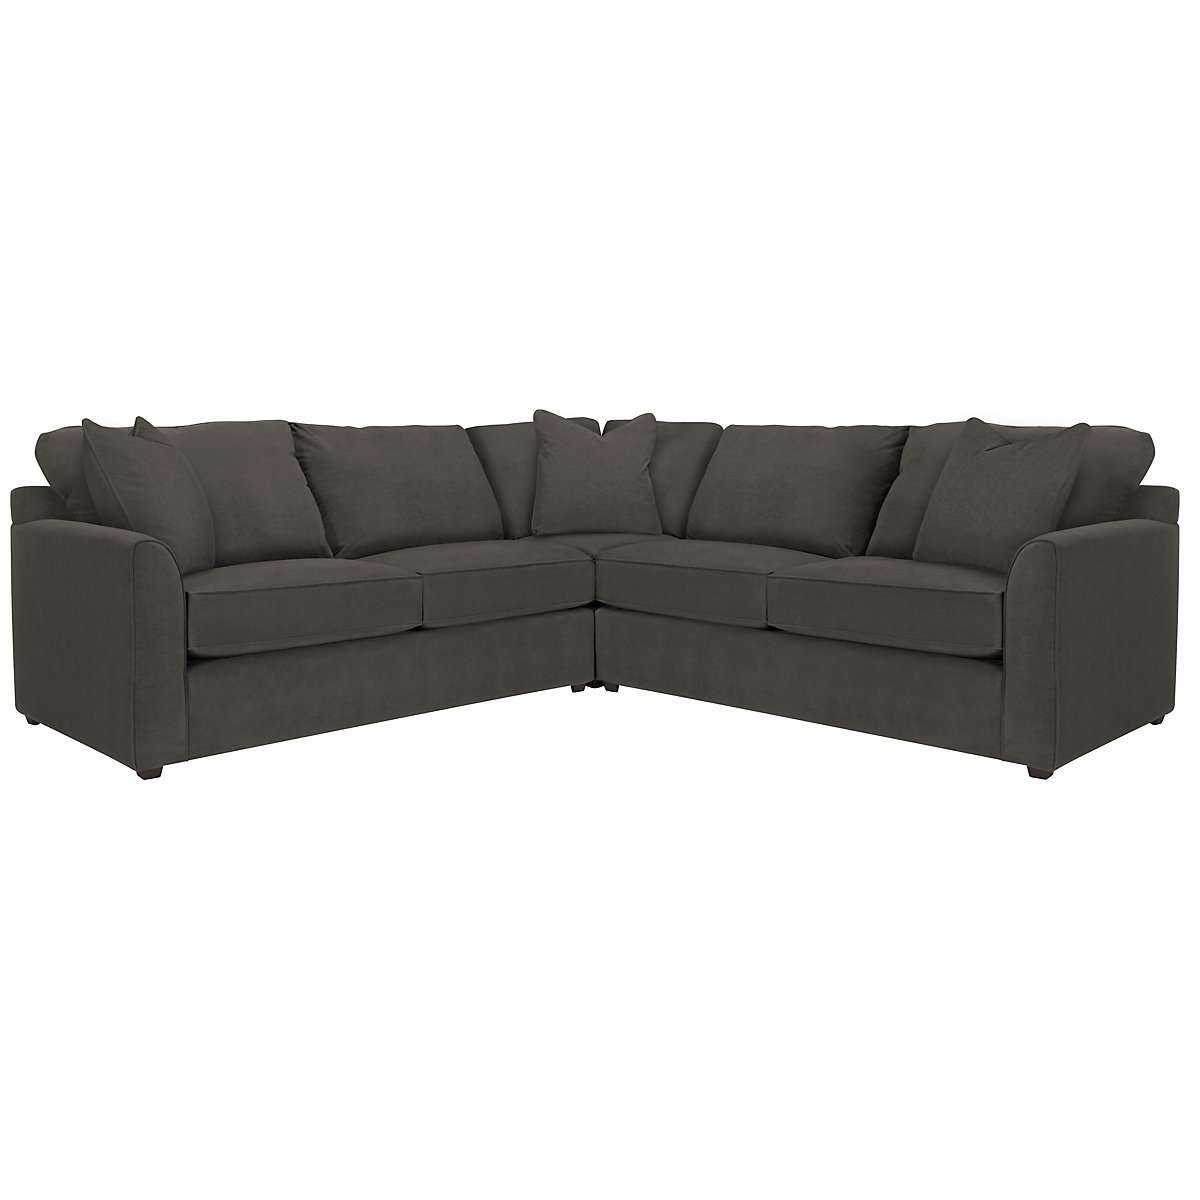 Express3 Dark Gray Microfiber Small Two-Arm Sectional